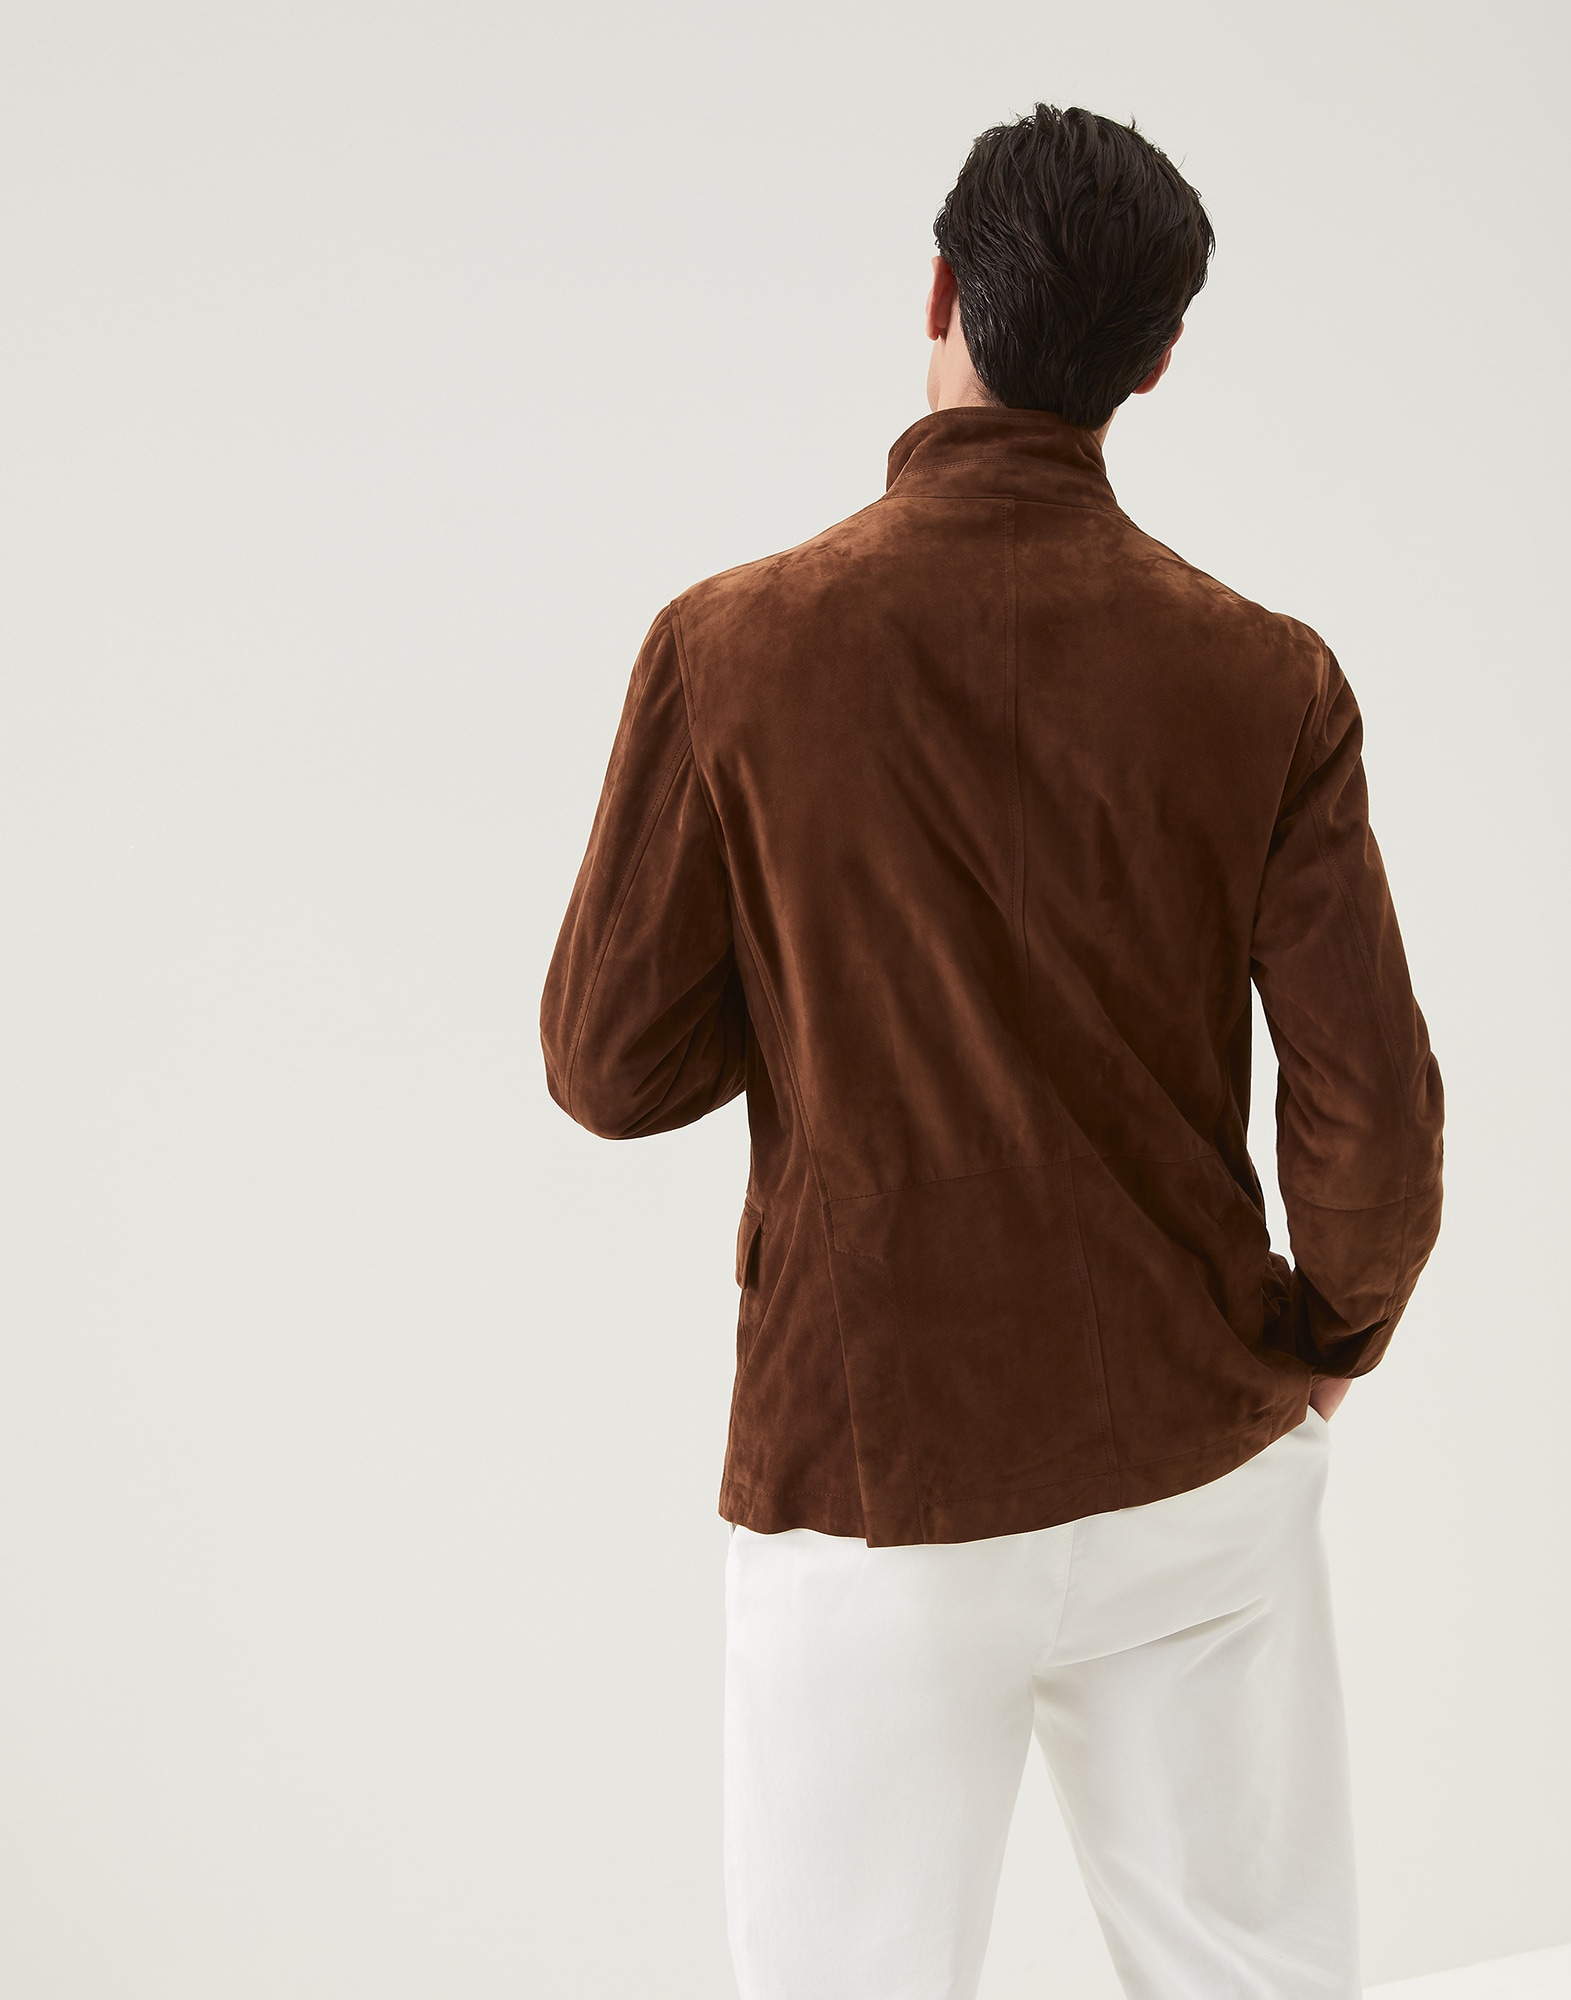 Jacket-style Outerwear - Back